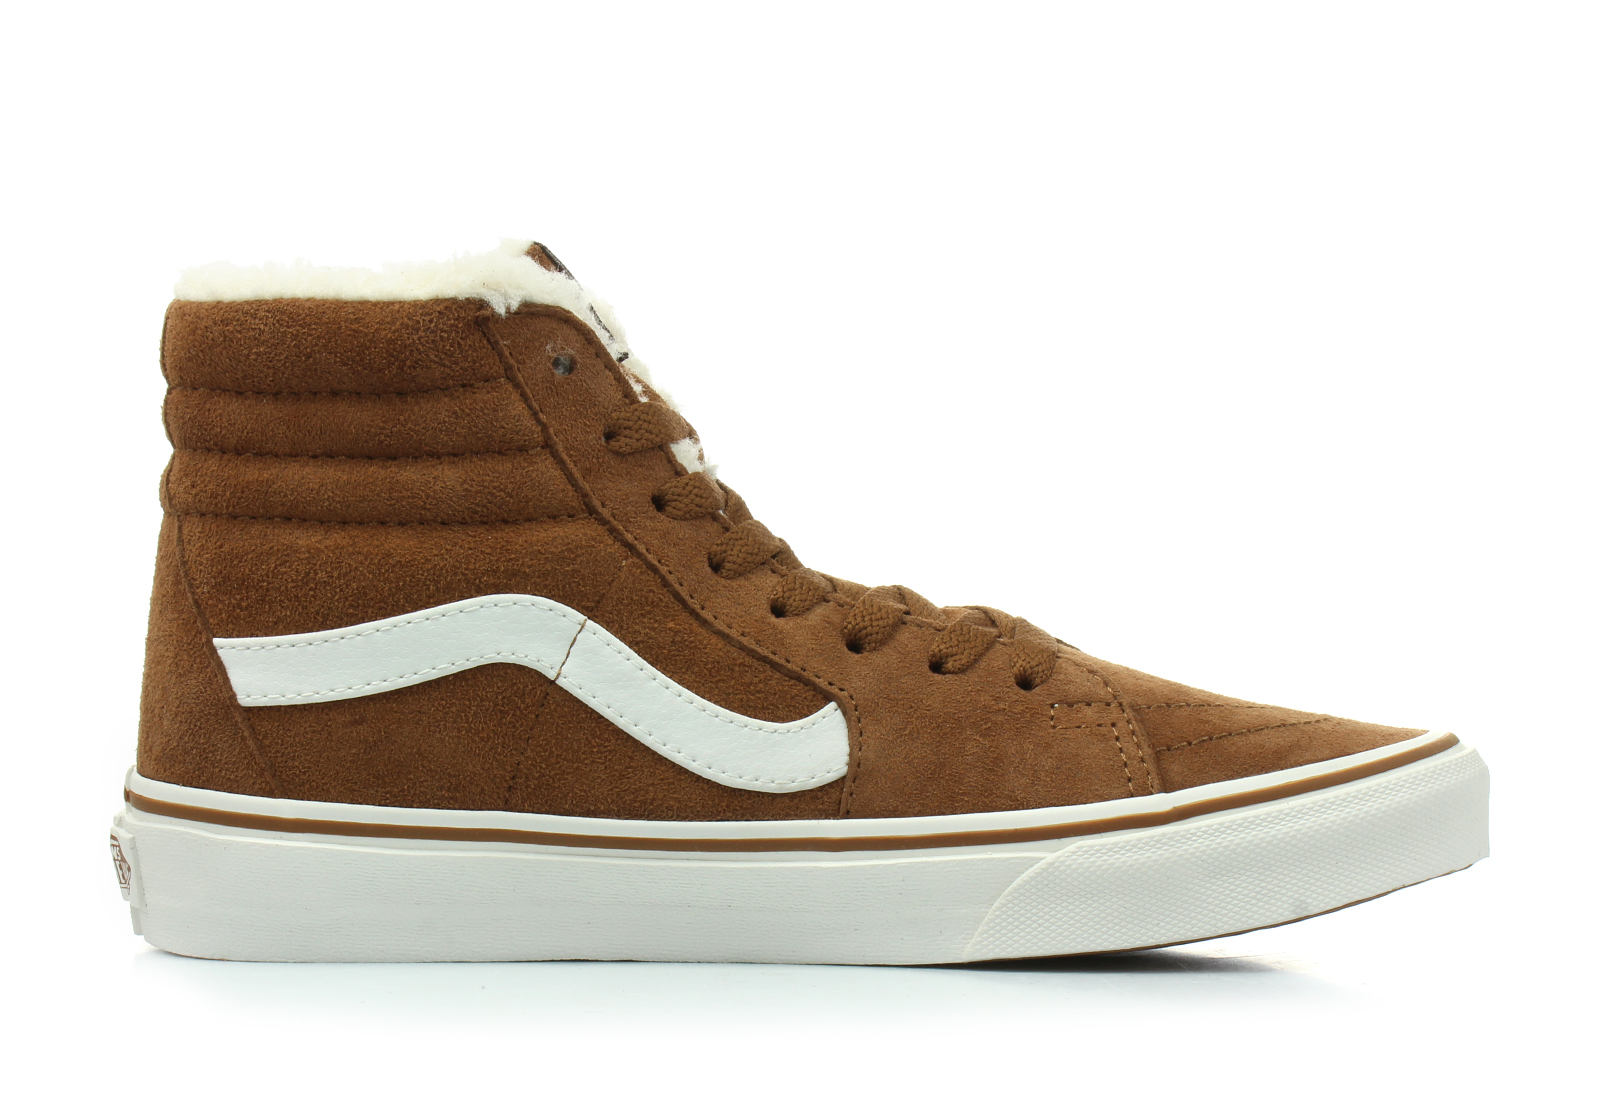 vans sneakers sk8 hi vts9hpy online shop for sneakers shoes and boots. Black Bedroom Furniture Sets. Home Design Ideas